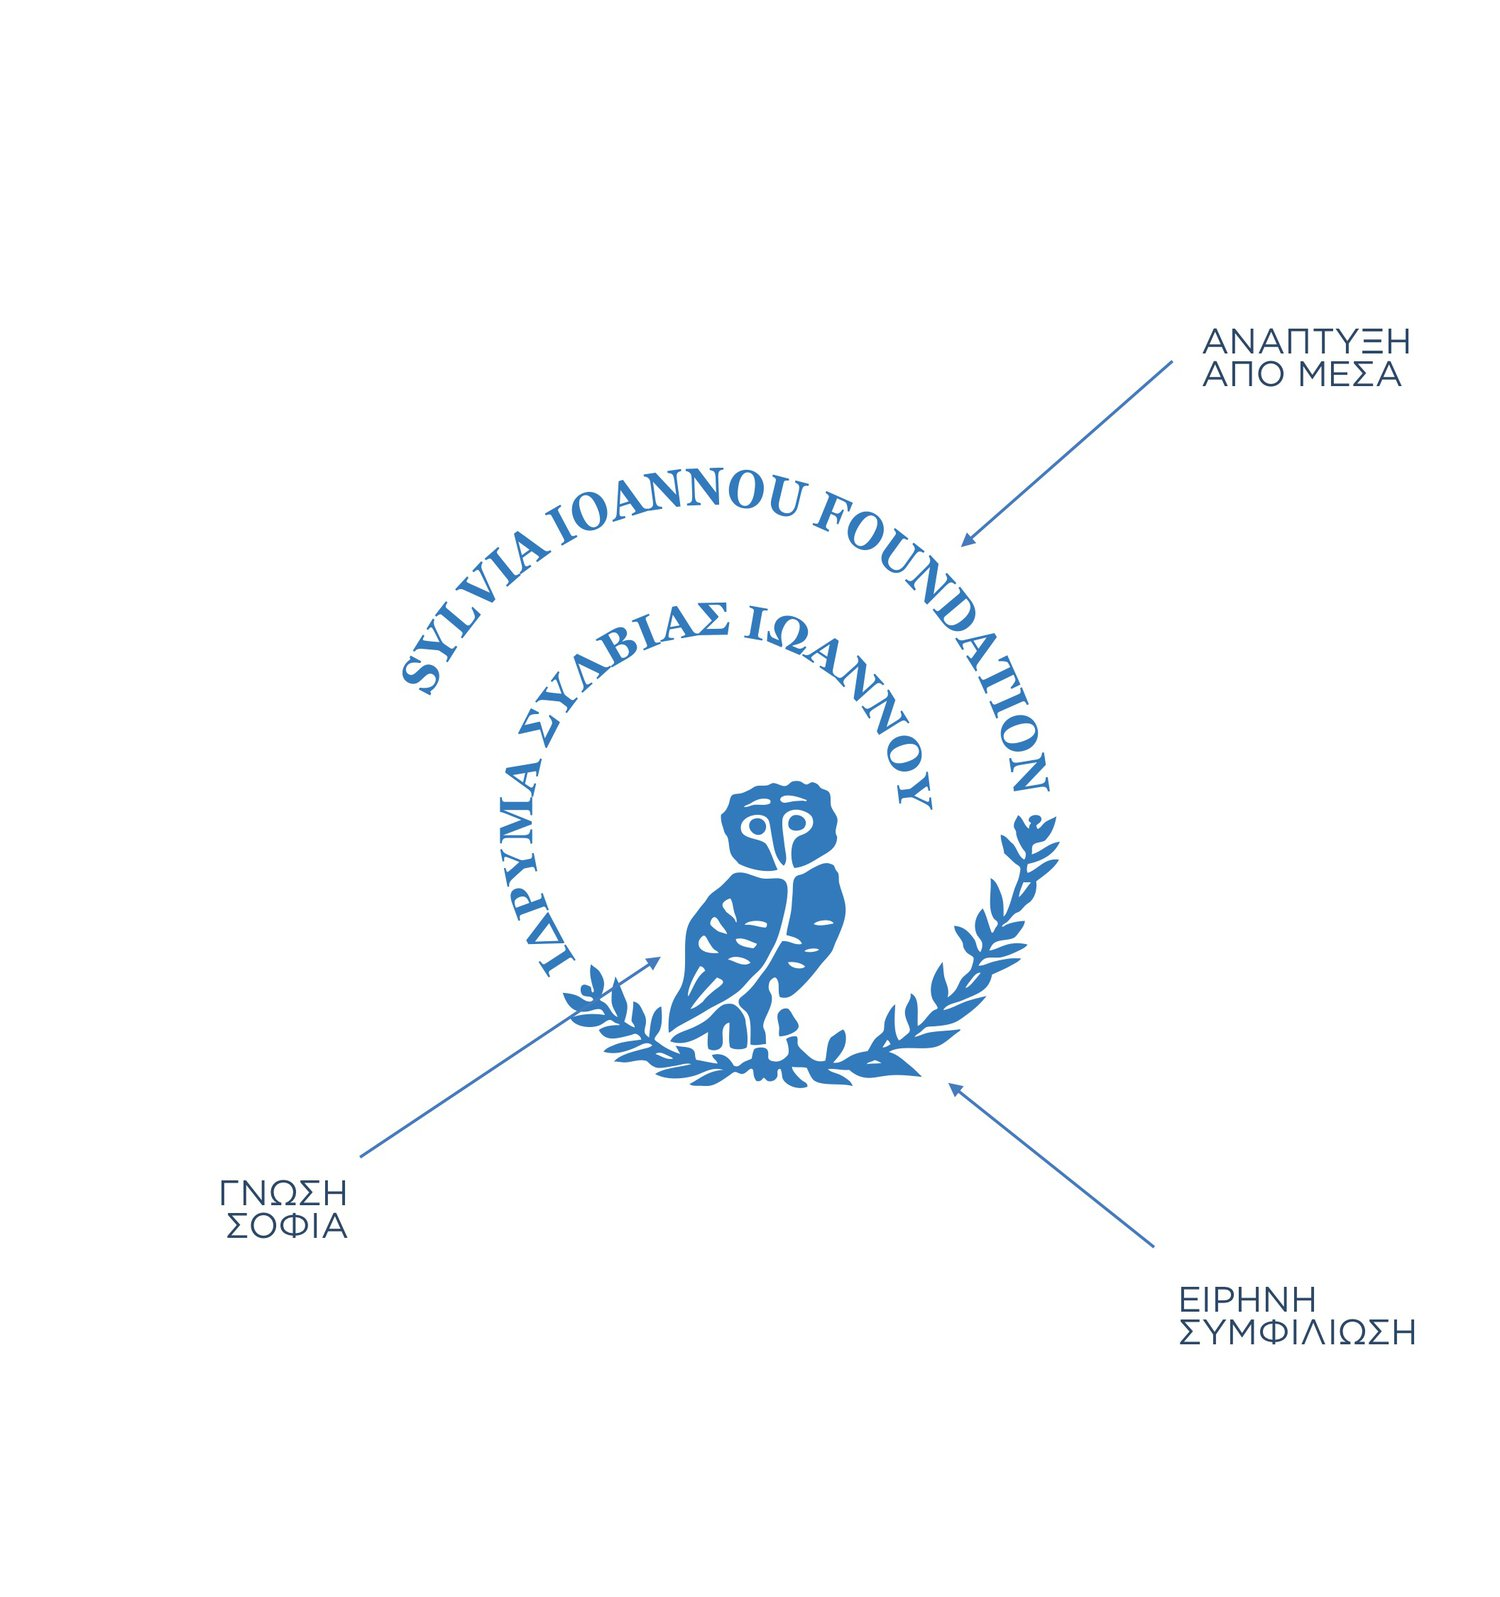 The original Sylvia Ioannou Foundation logo